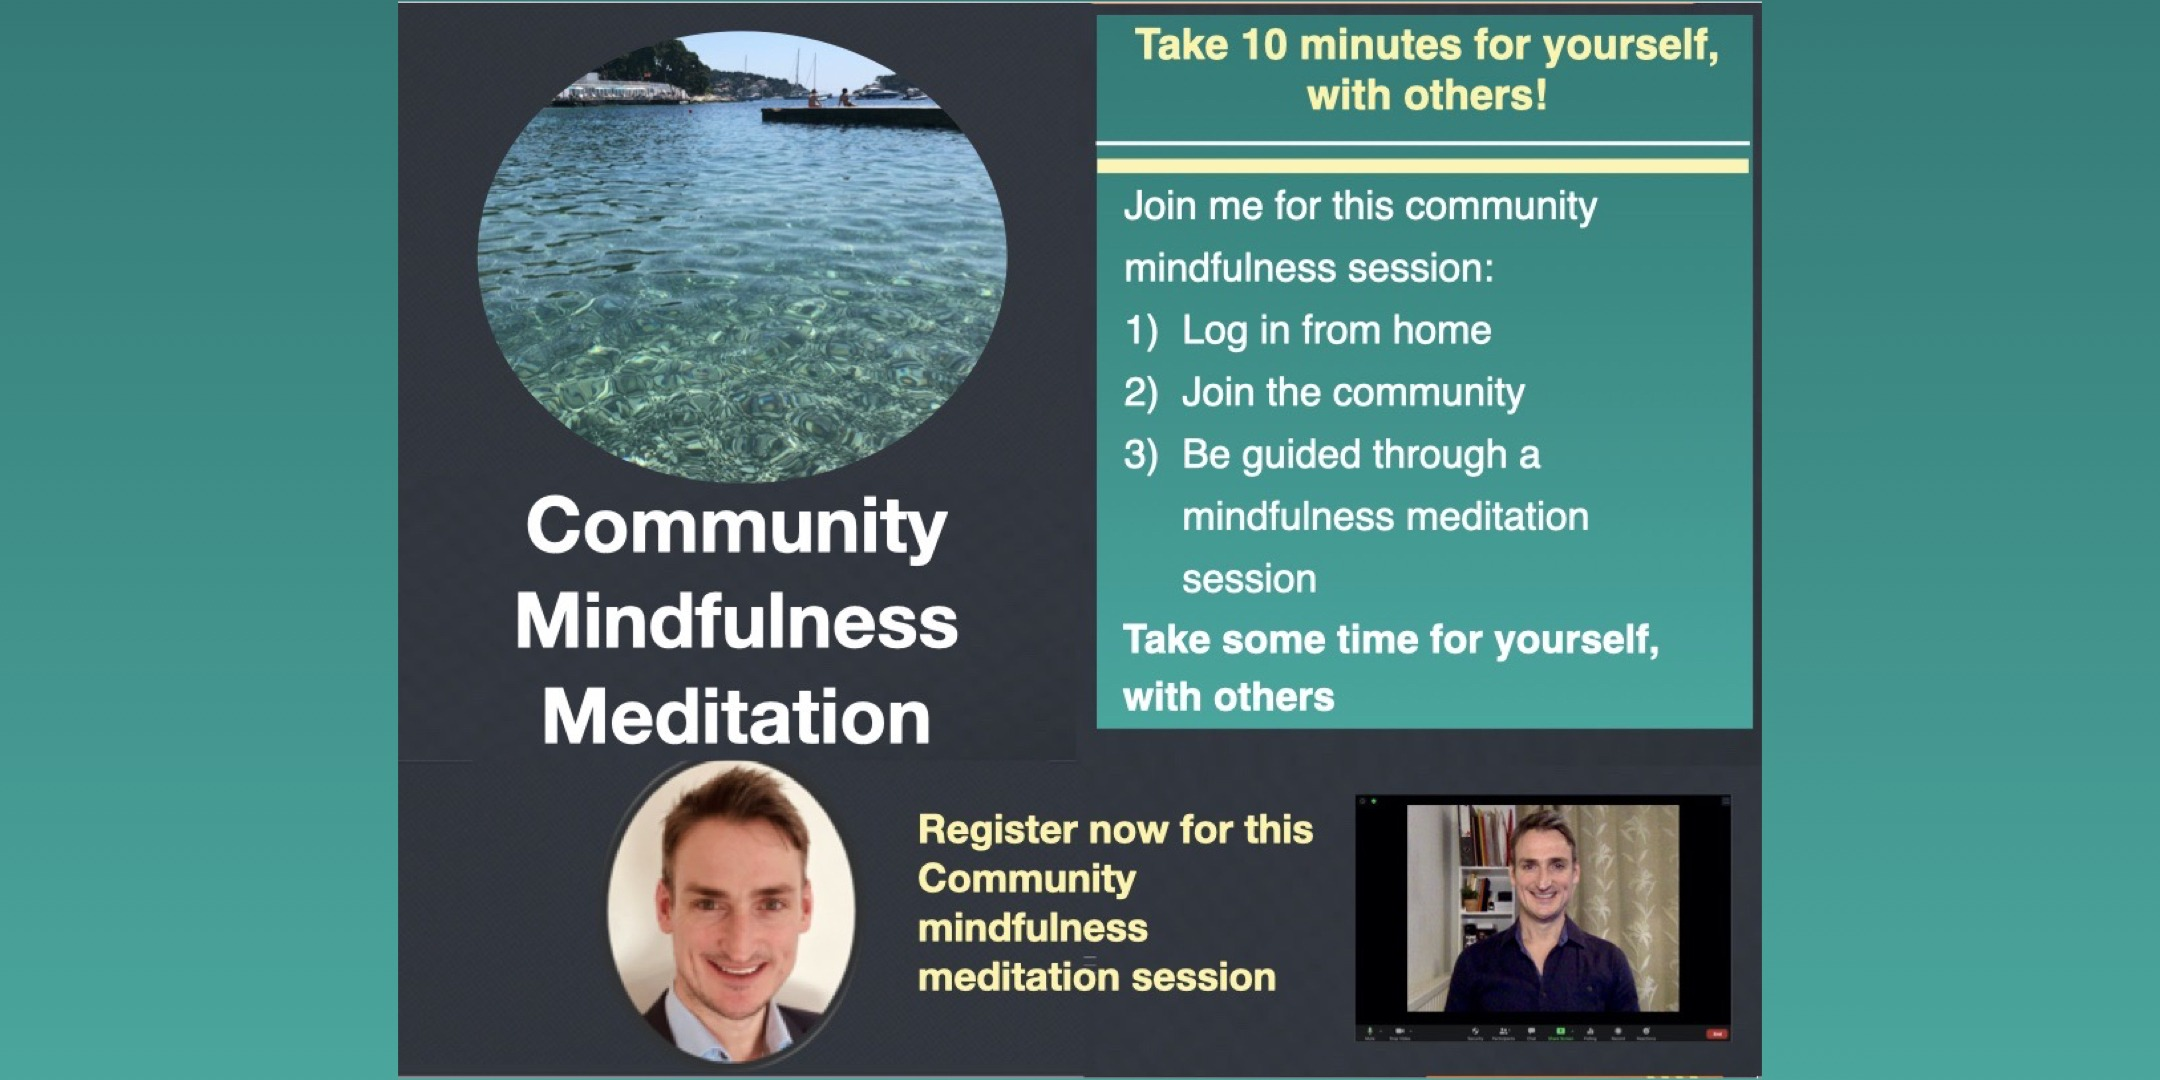 Community Mindfulness Meditation with David Murray